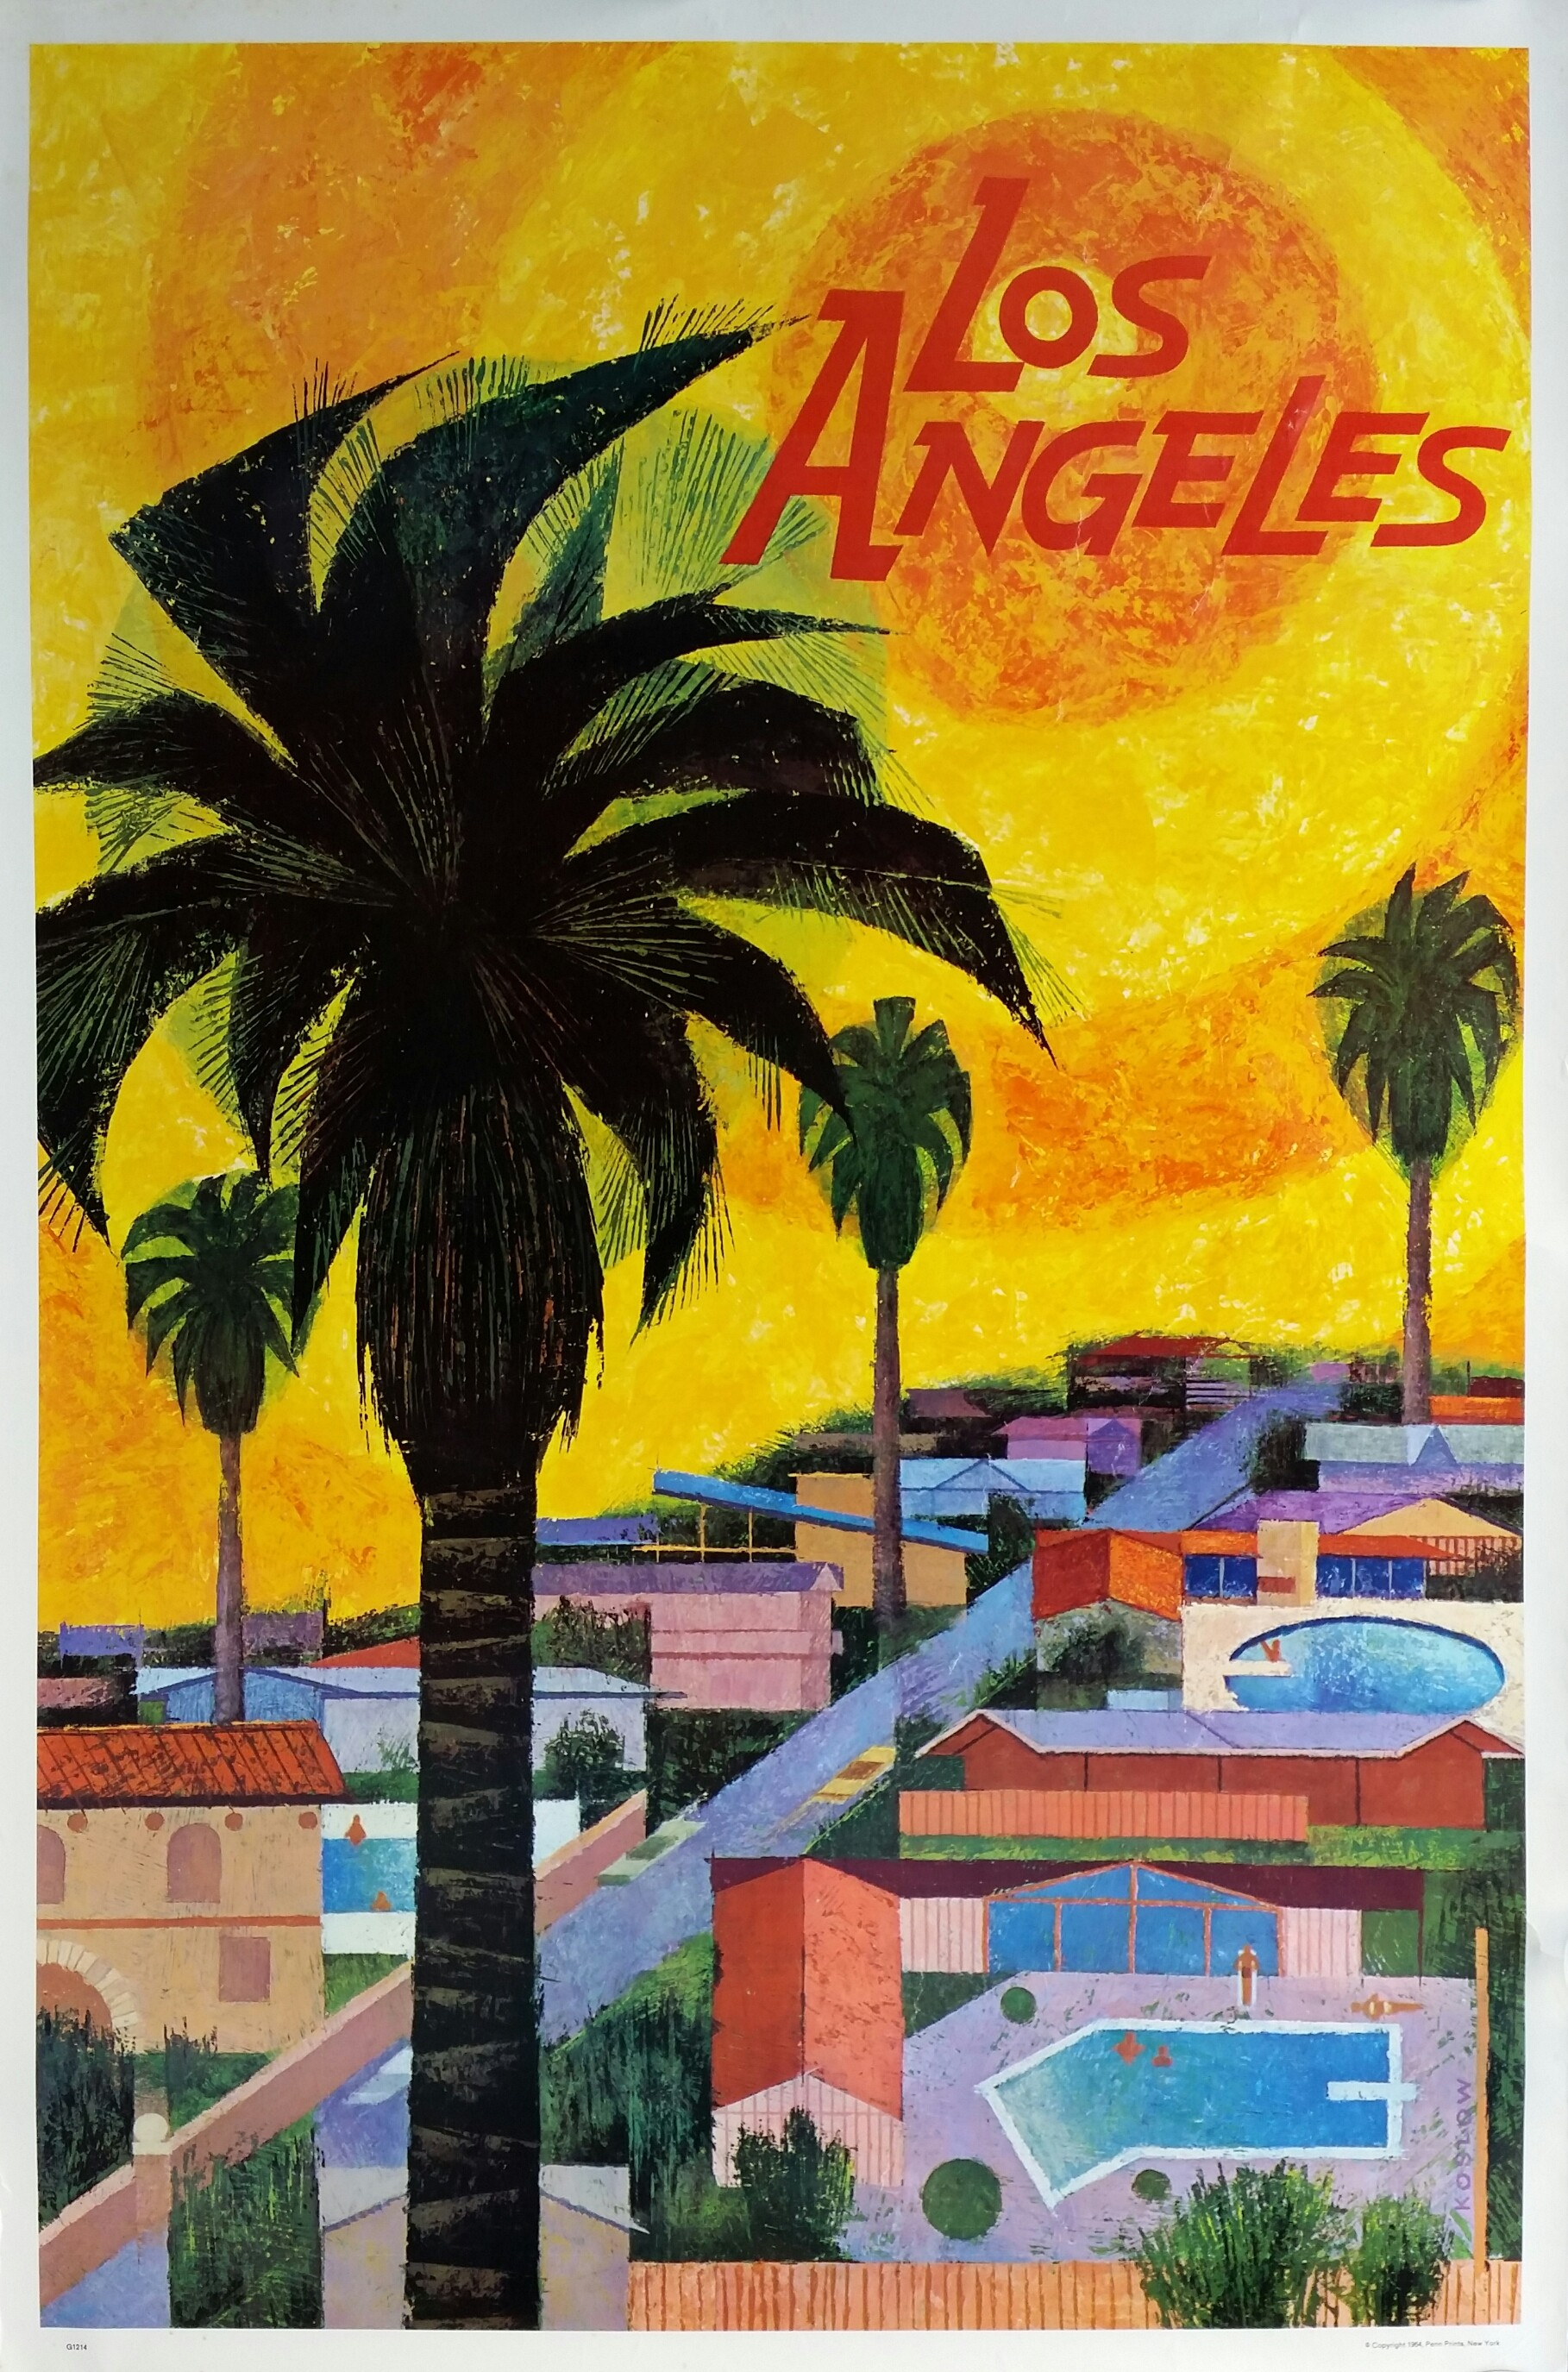 Original Vintage Posters To Promote Trips To Los Angeles Affiche - Los angeles posters vintage